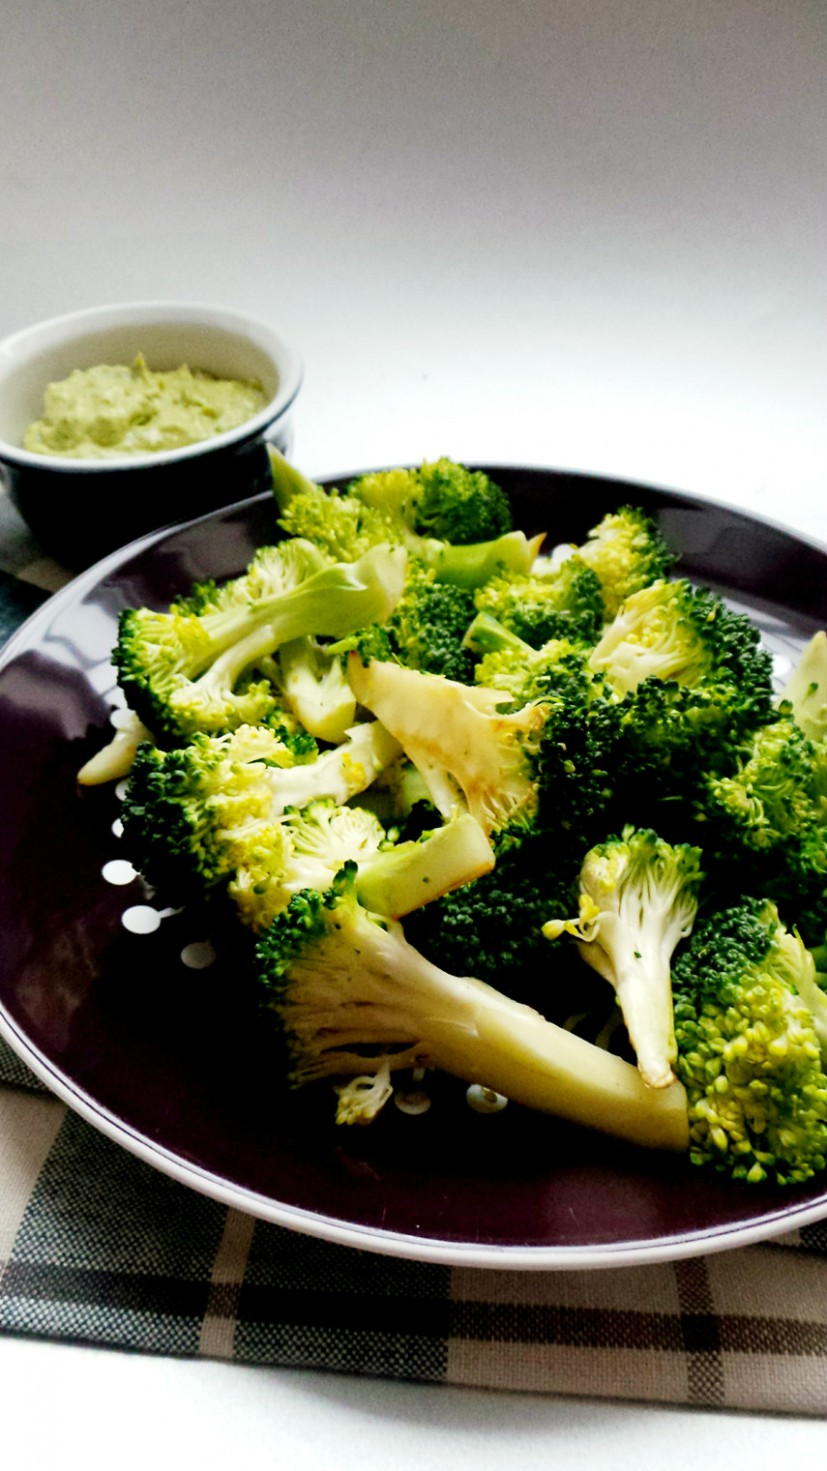 broccoli with dip